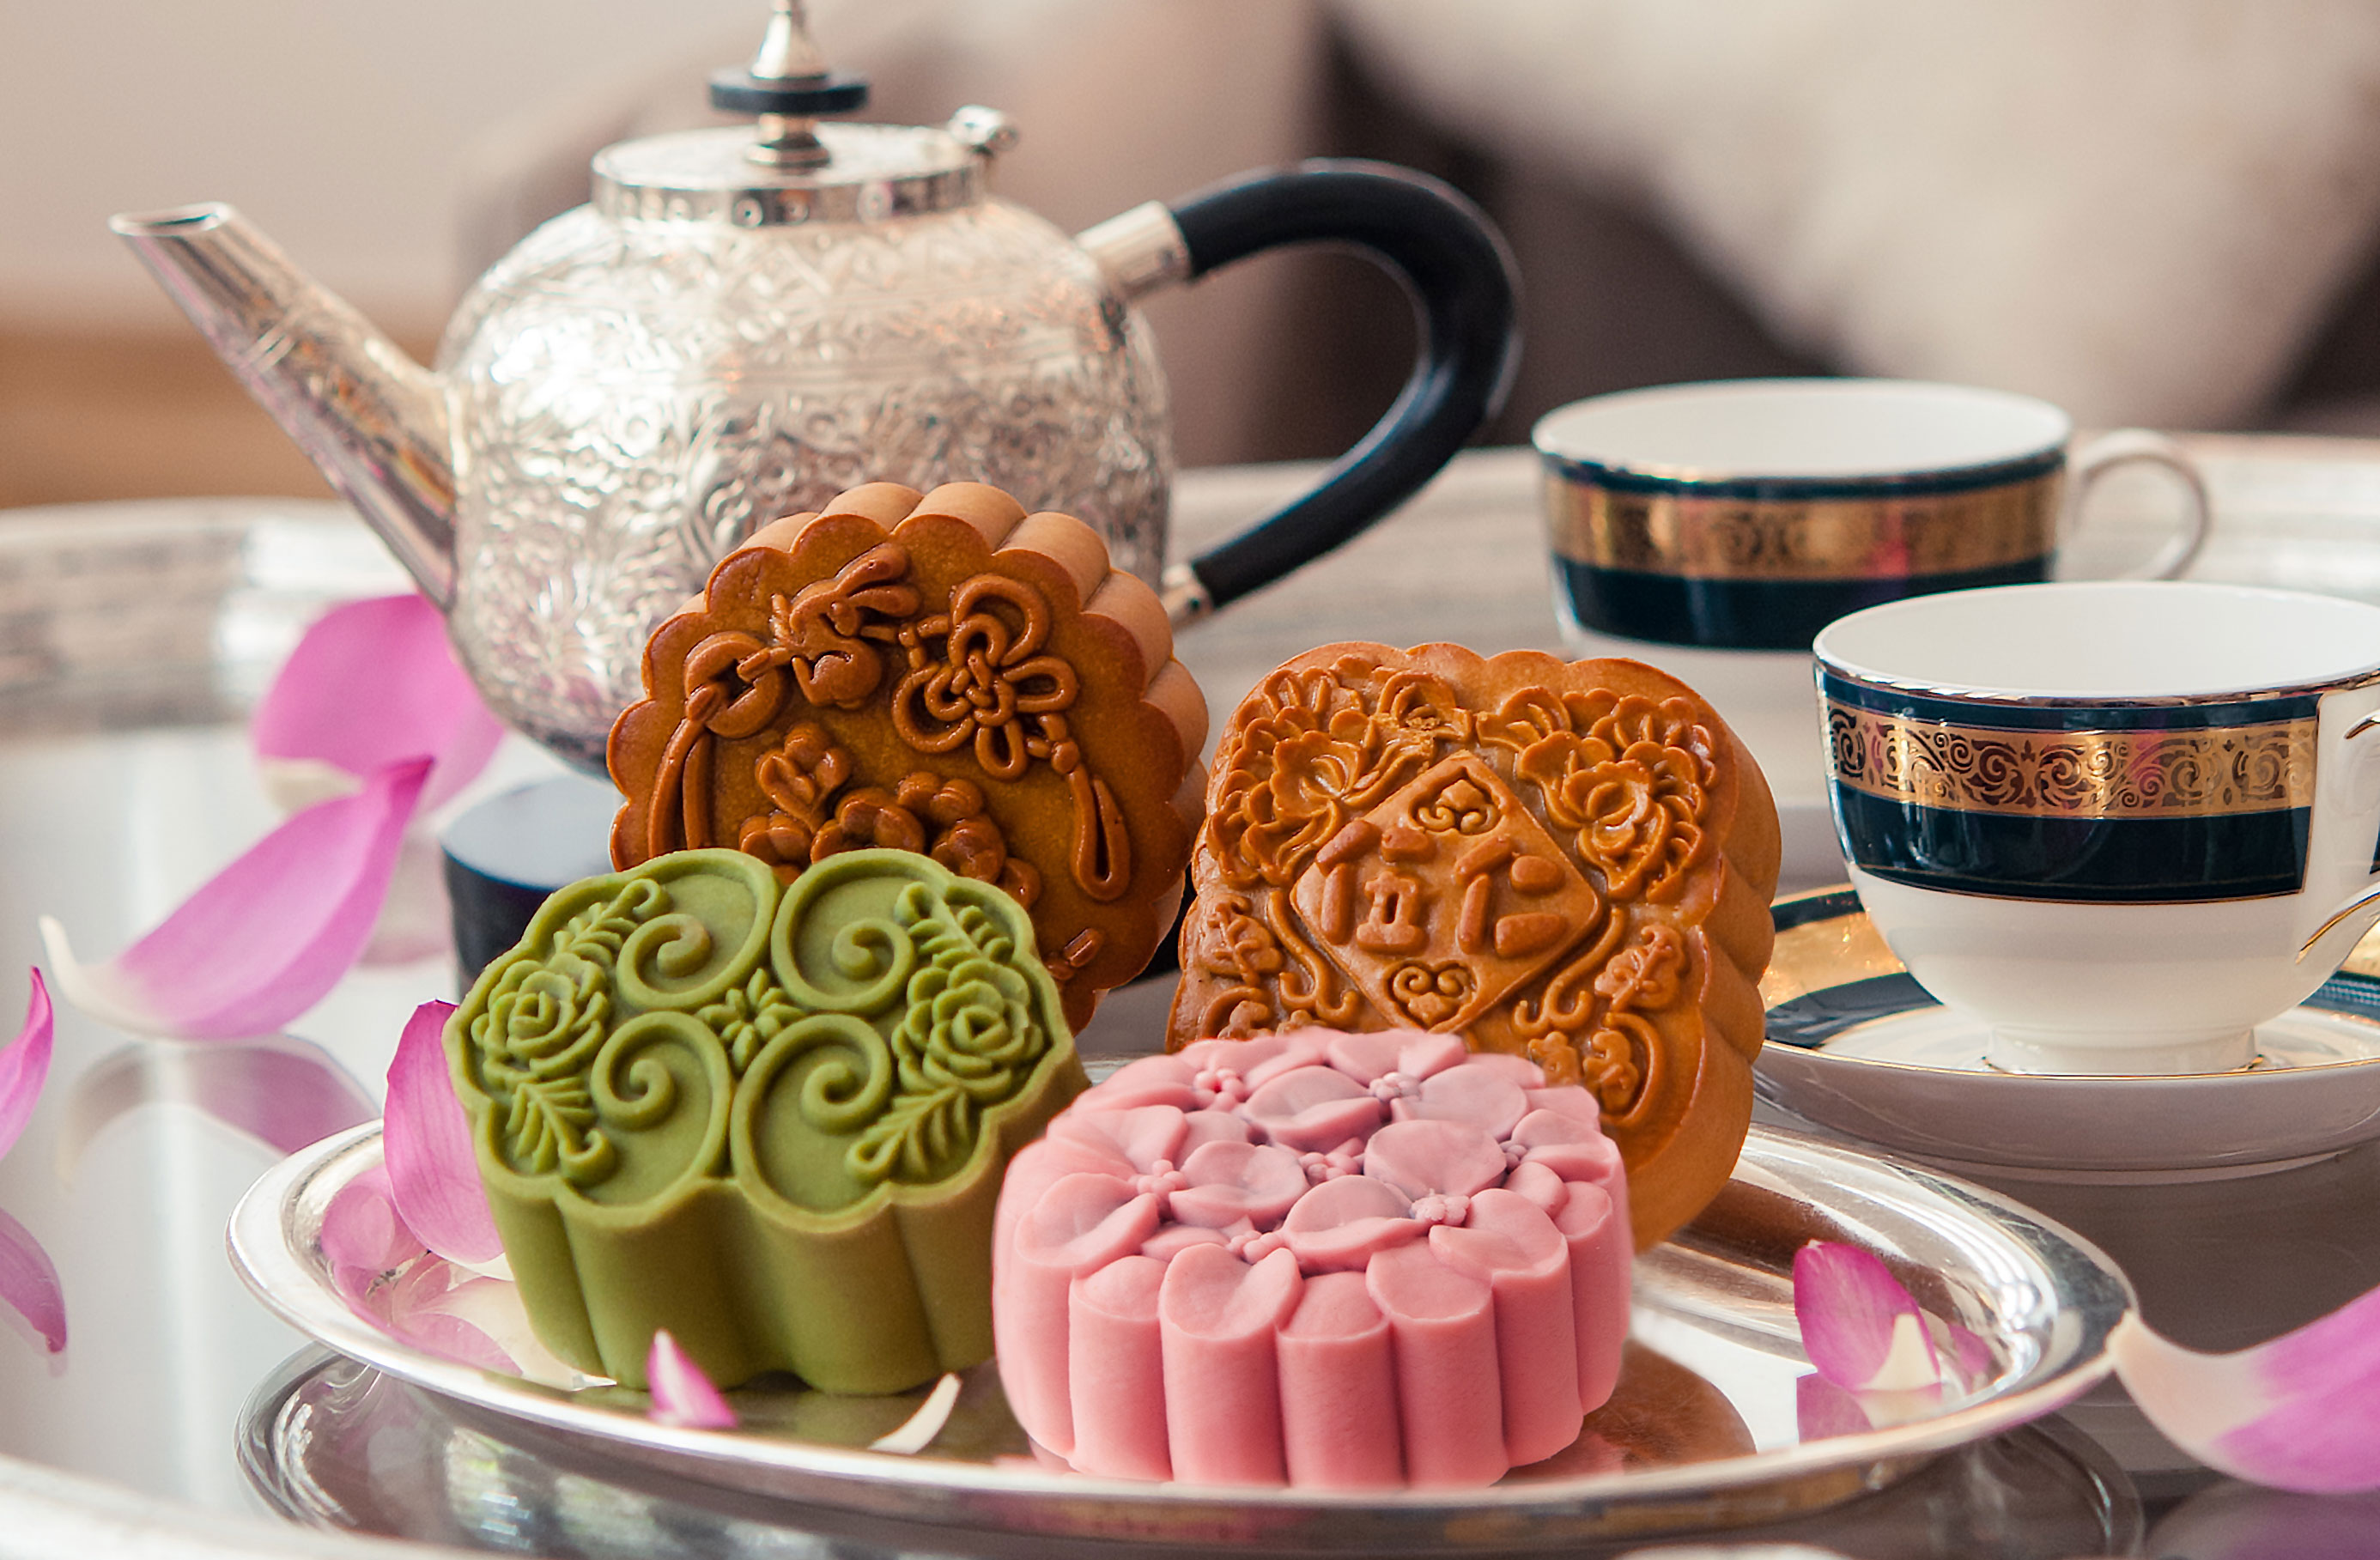 Exquisite Mid-Autumn Festival flavors at Park Hyatt Saigon ...